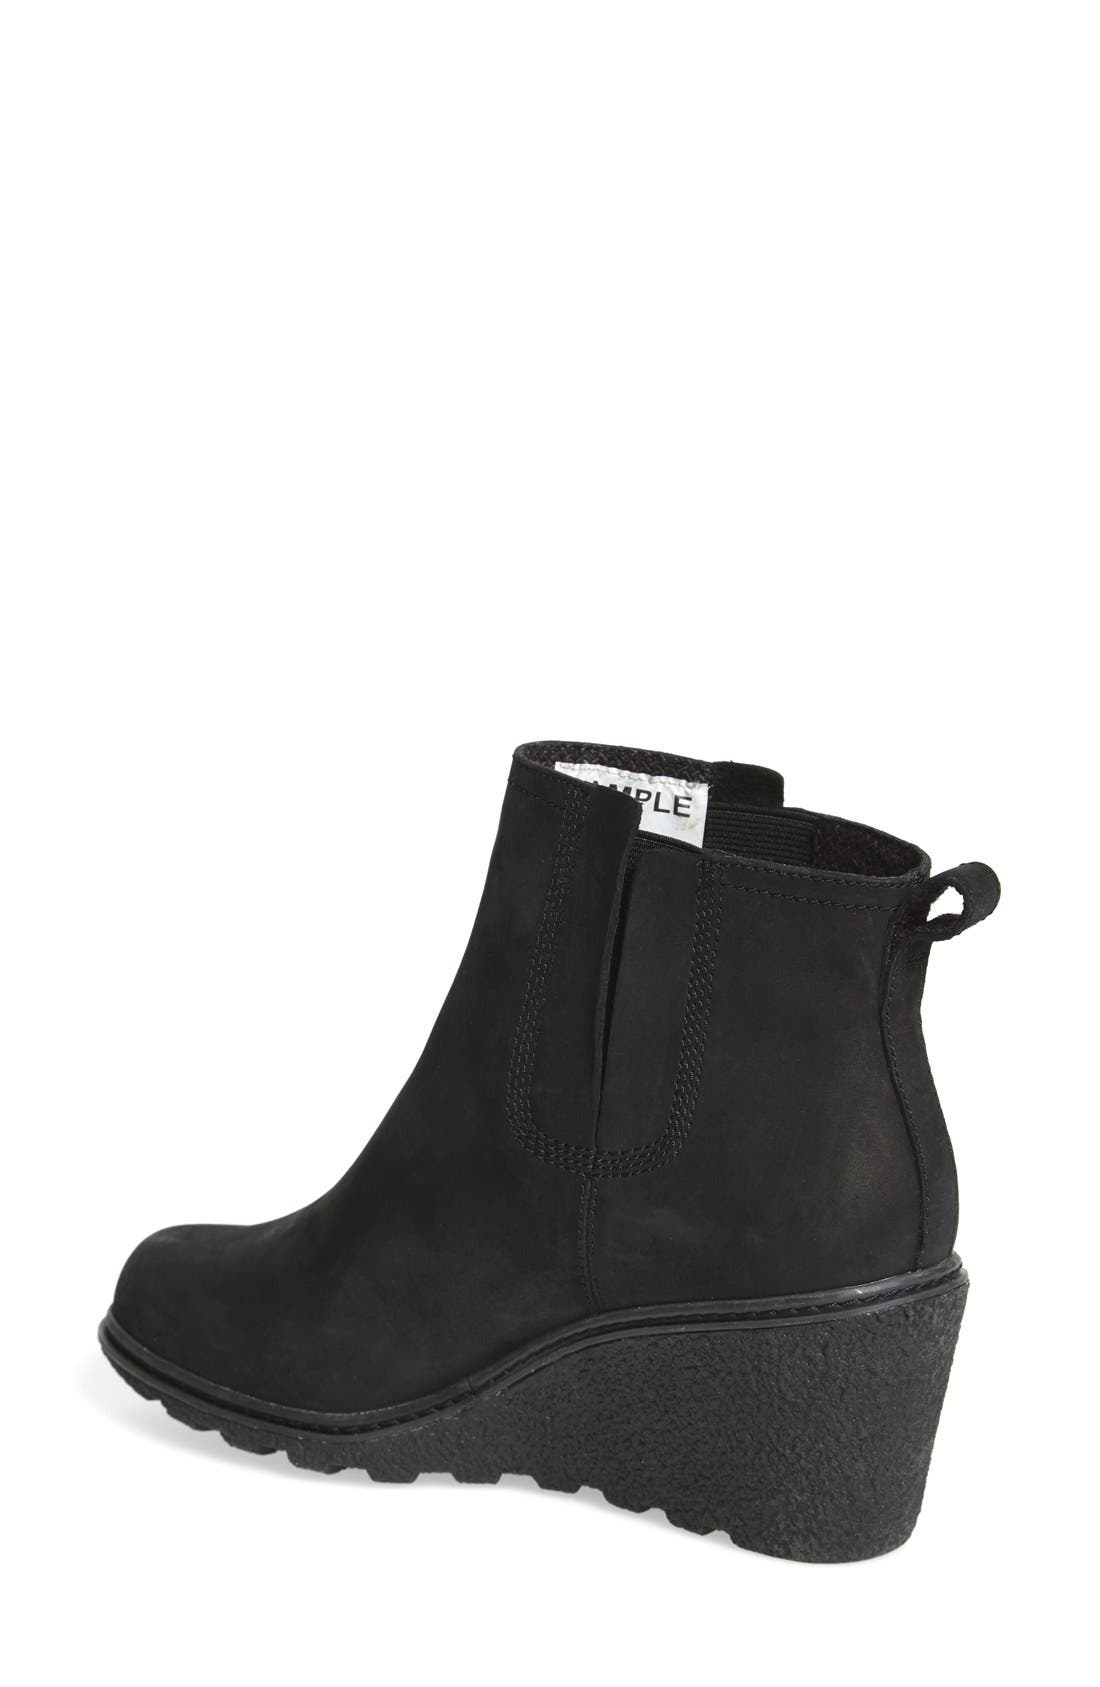 'Amston' Chelsea Wedge Boot,                             Alternate thumbnail 2, color,                             001